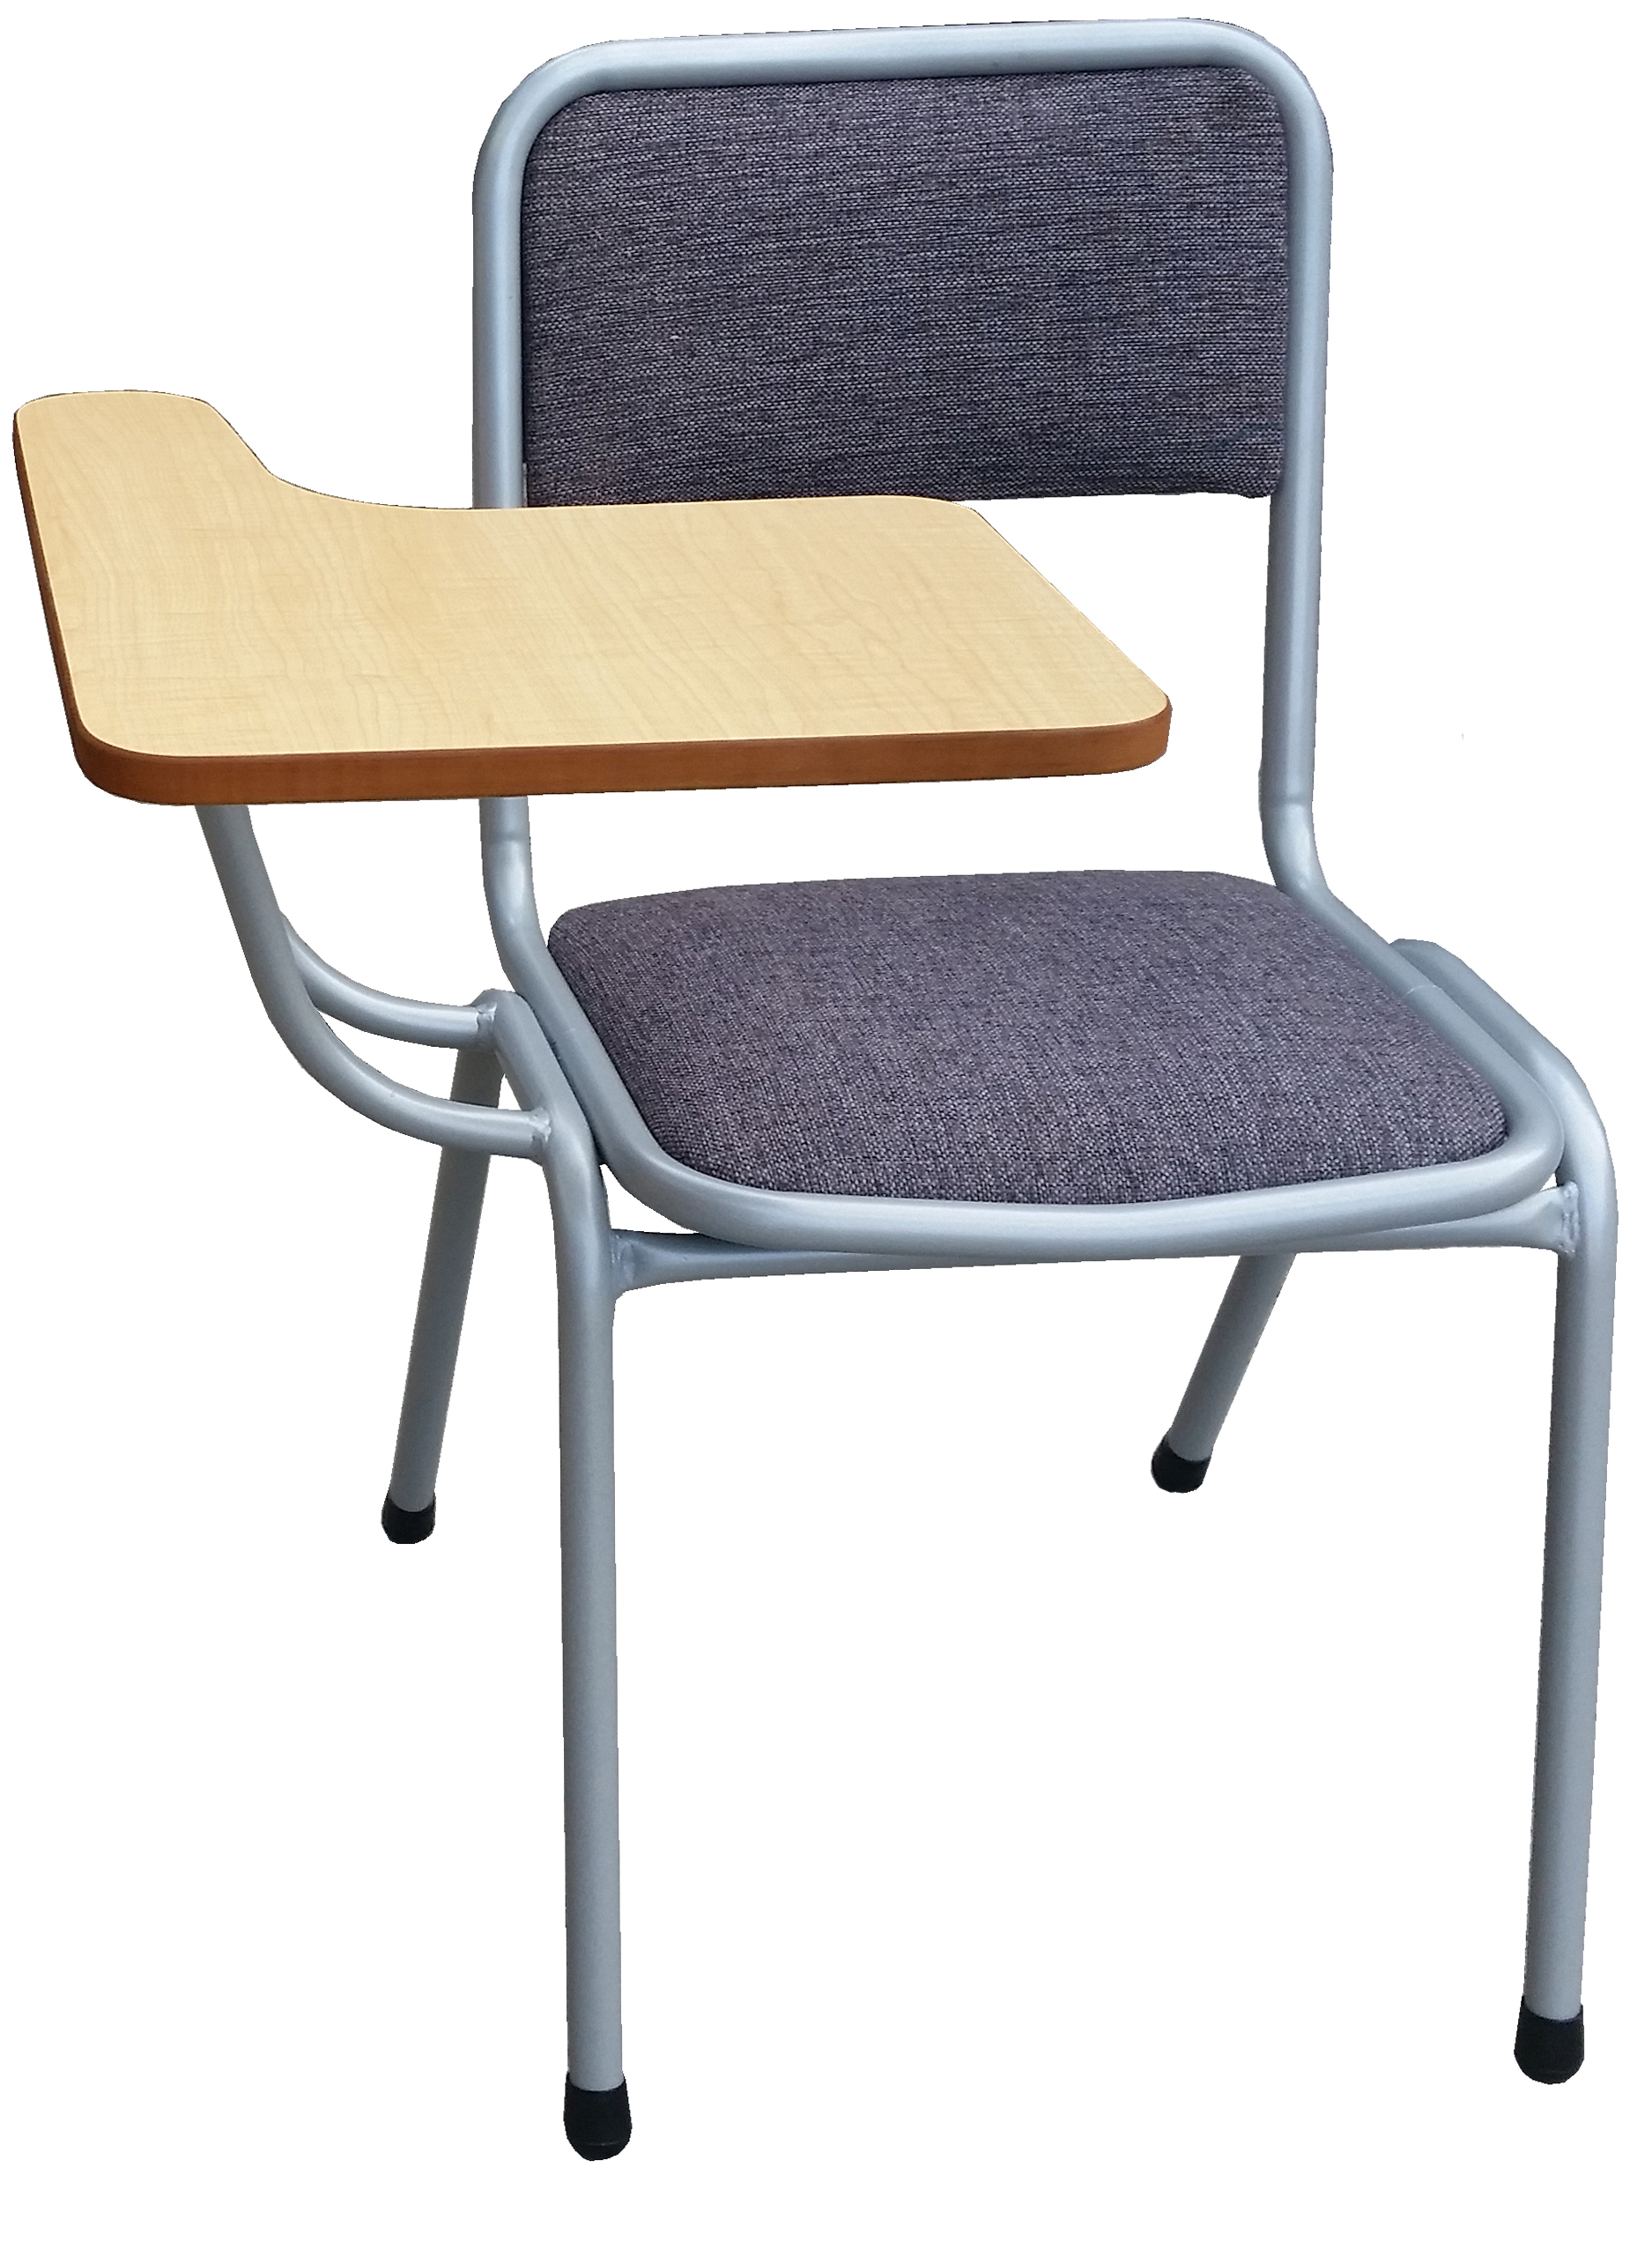 good posture lounge chair folding rocking school furniture second office